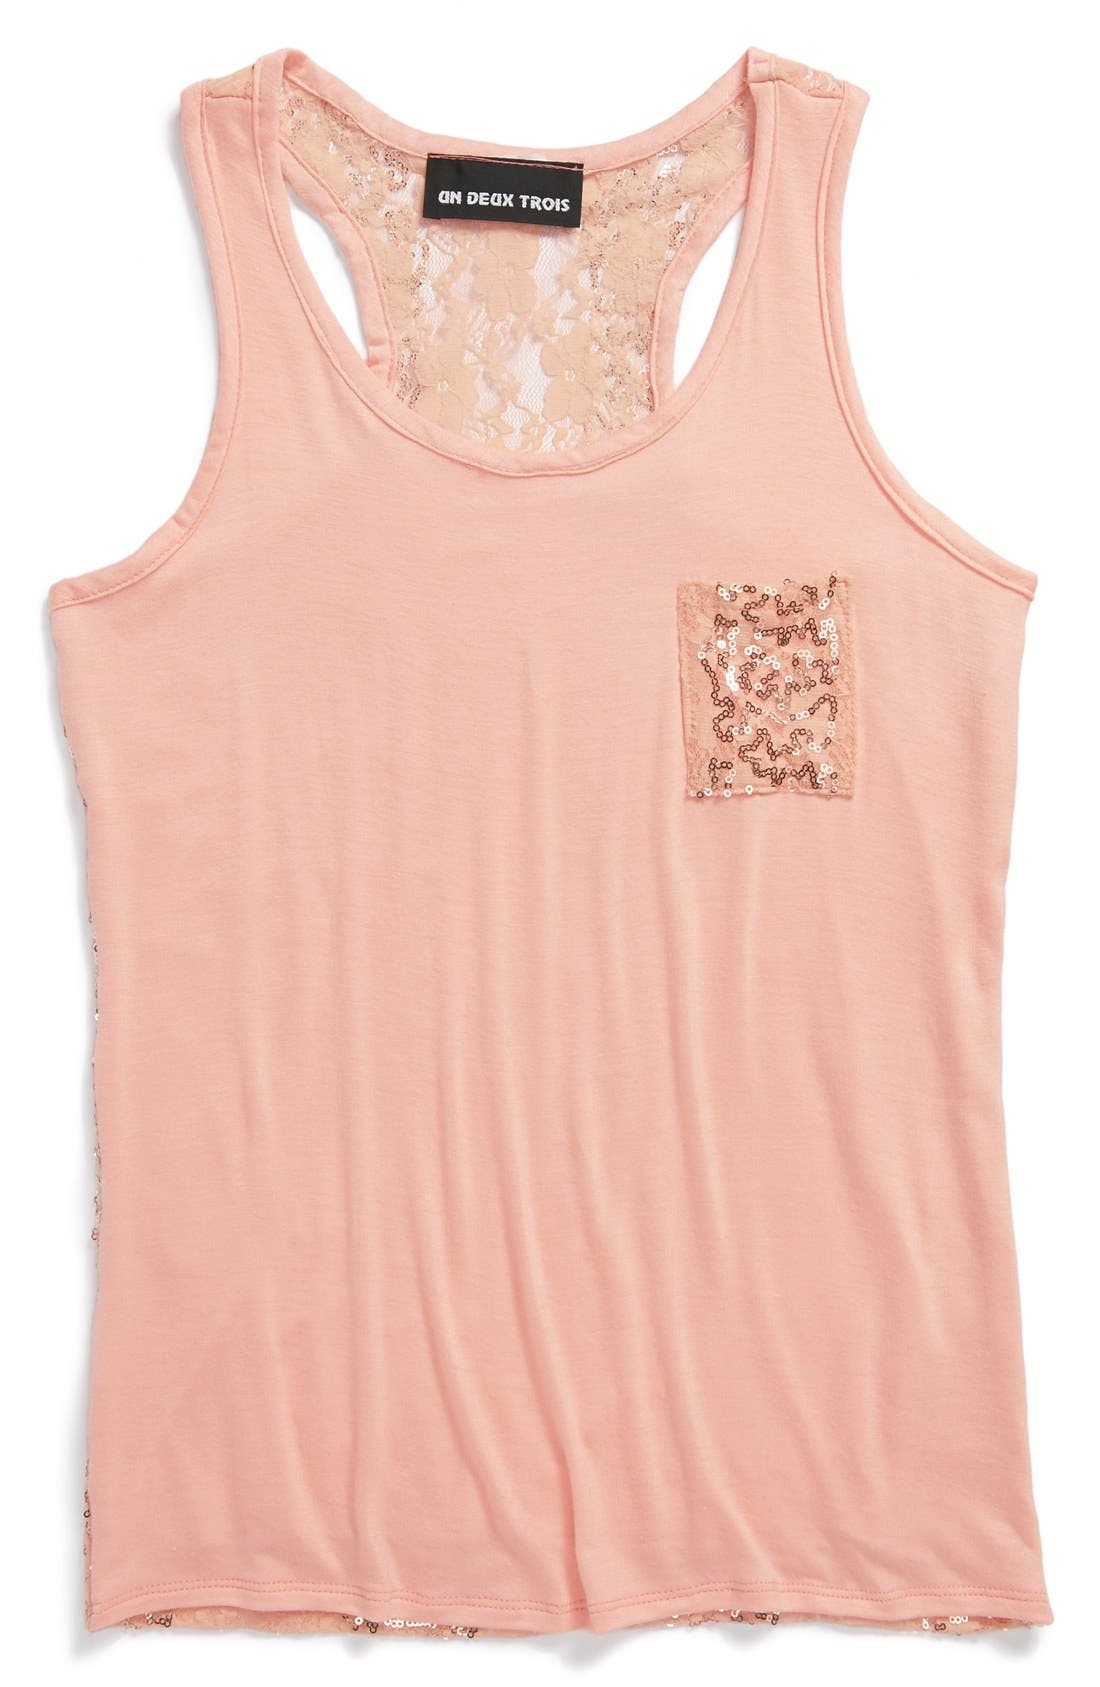 Alternate Image 1 Selected - Un Deux Trois Sequin Sleeveless Top (Big Girls)(Online Only)